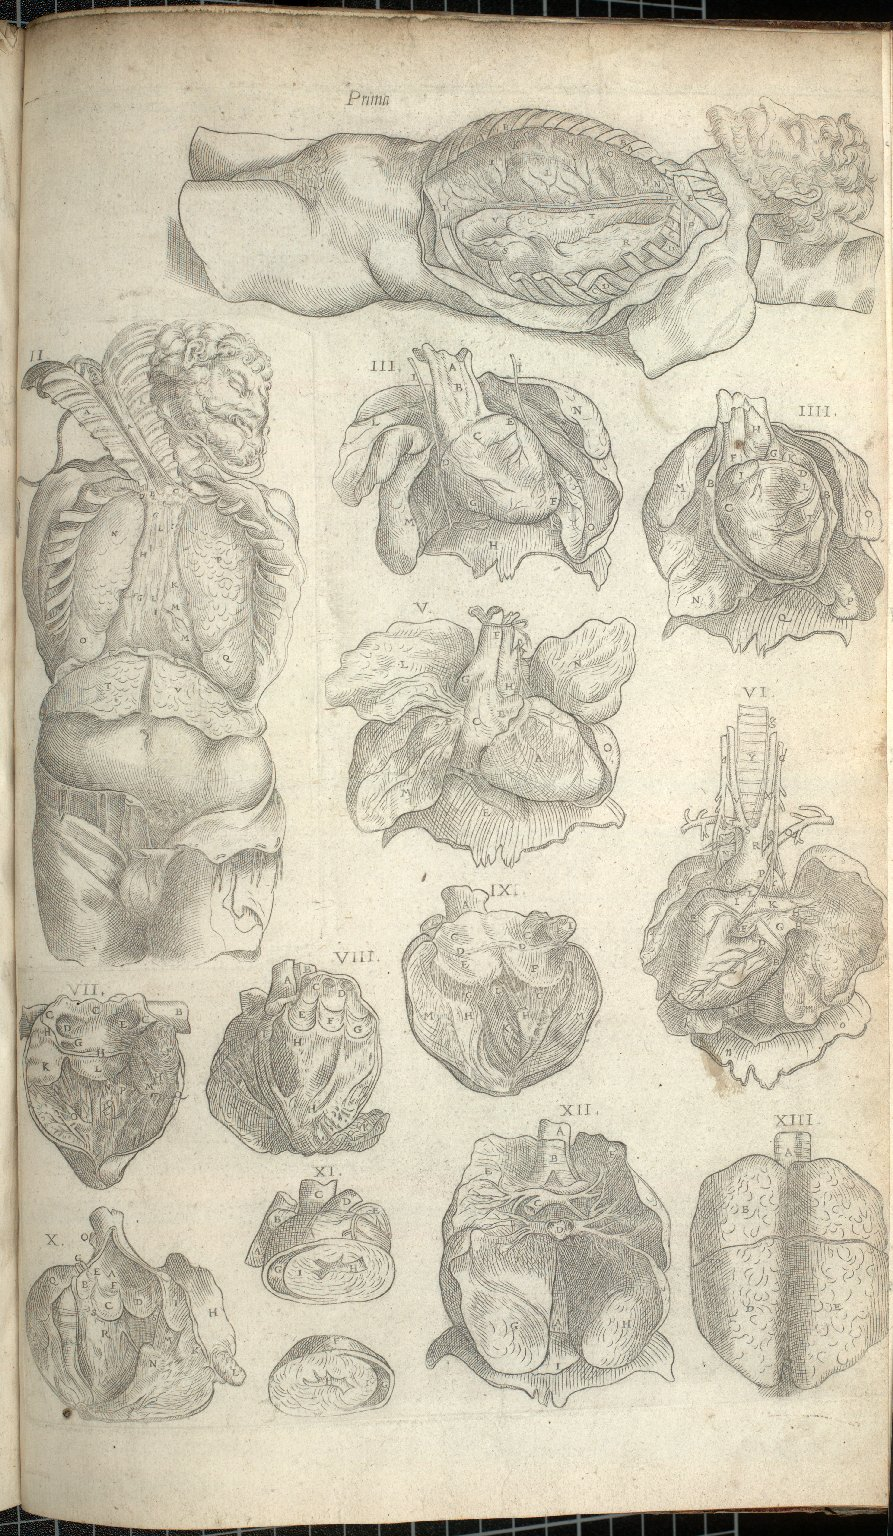 Prima, et.al. (Tables of the Organs of the Heart)